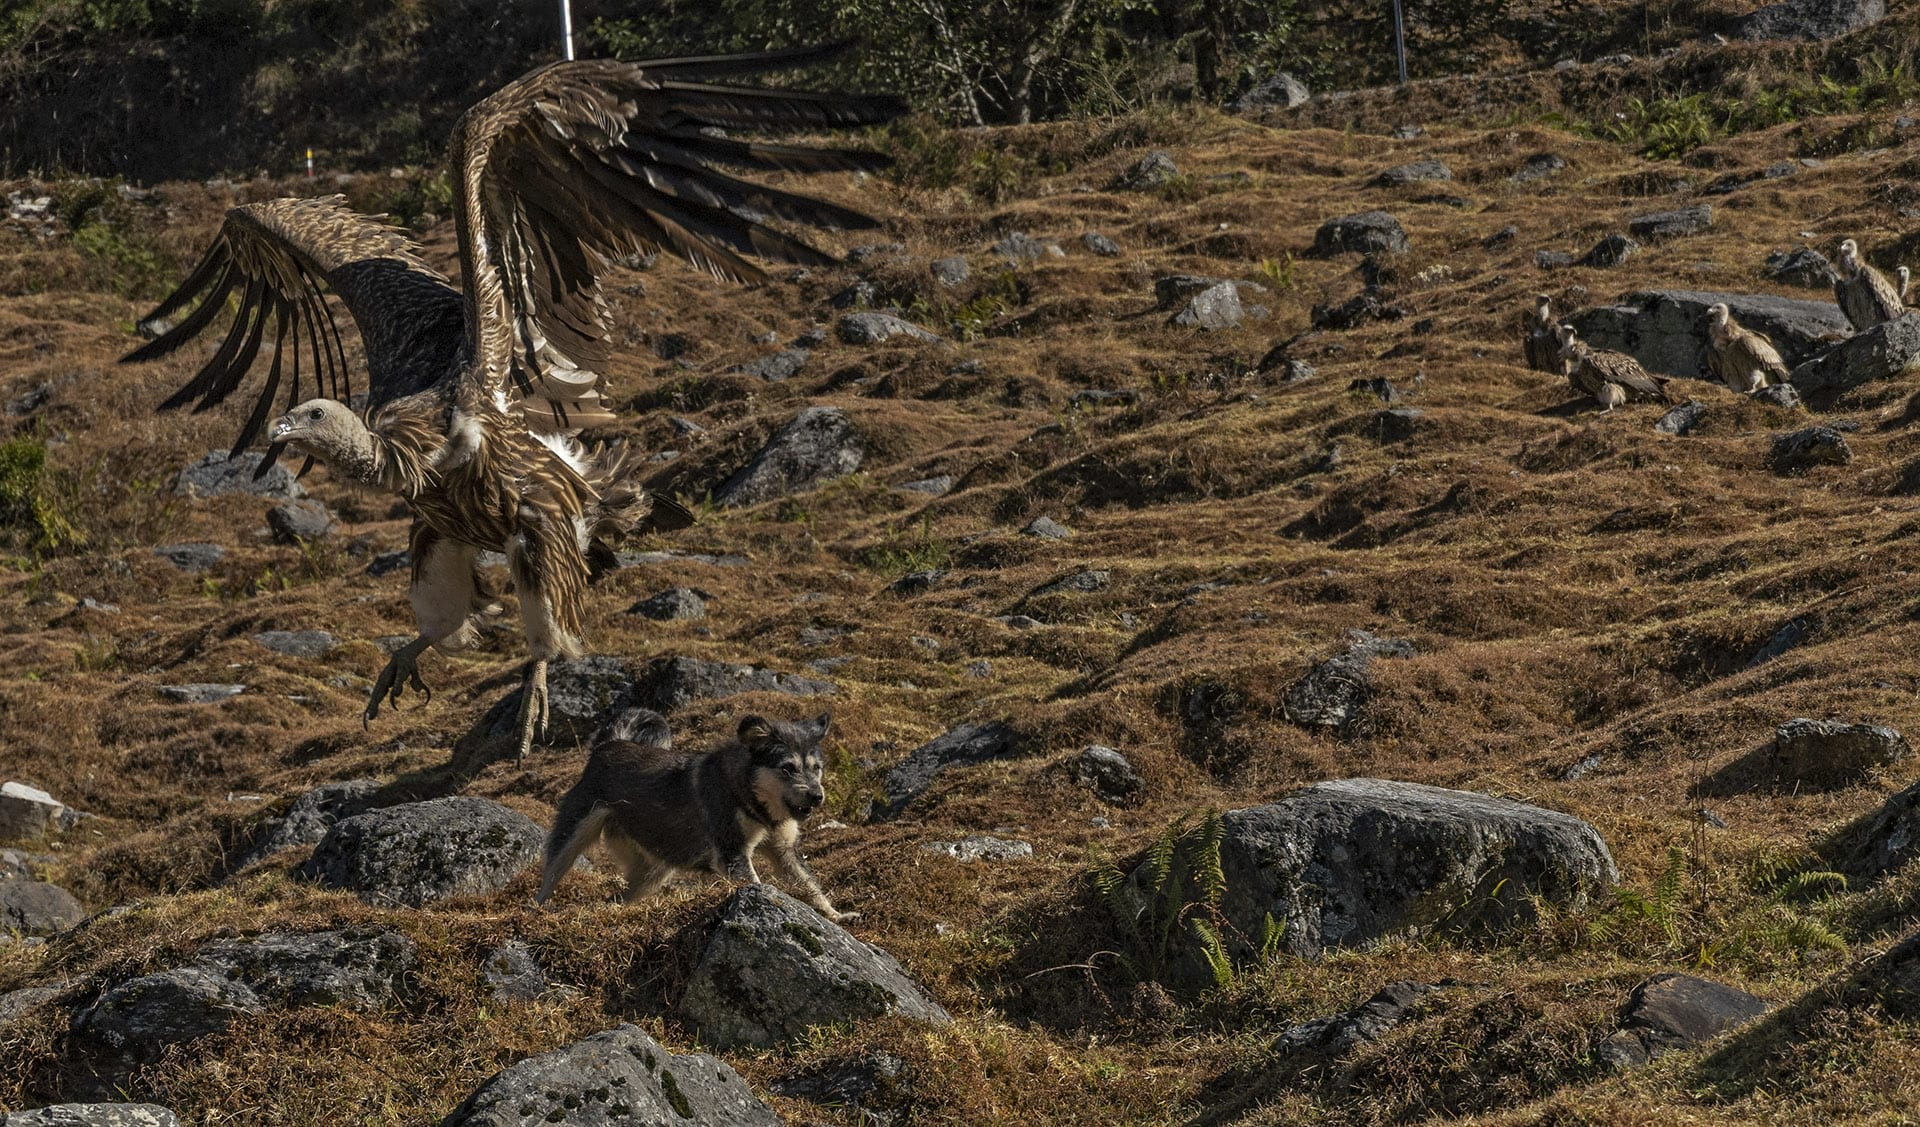 Indian wildlife faces a massive threat from free-ranging stray dogs. With 60 million of them spread across the country, India has the fourth-highest population of these dogs in the world. After the mass death of vultures due to diclofenac, free-ranging dogs consumed carcasses in their absence. Vulture populations rose after the ban on diclofenac but these dogs became their new competition and often got chased away by them. A similar case can be seen here where a free-ranging stray dog chases away a Himalayan griffon. These dogs not only compete with wildlife for food but also spread diseases that can cause mass deaths of wild animals.